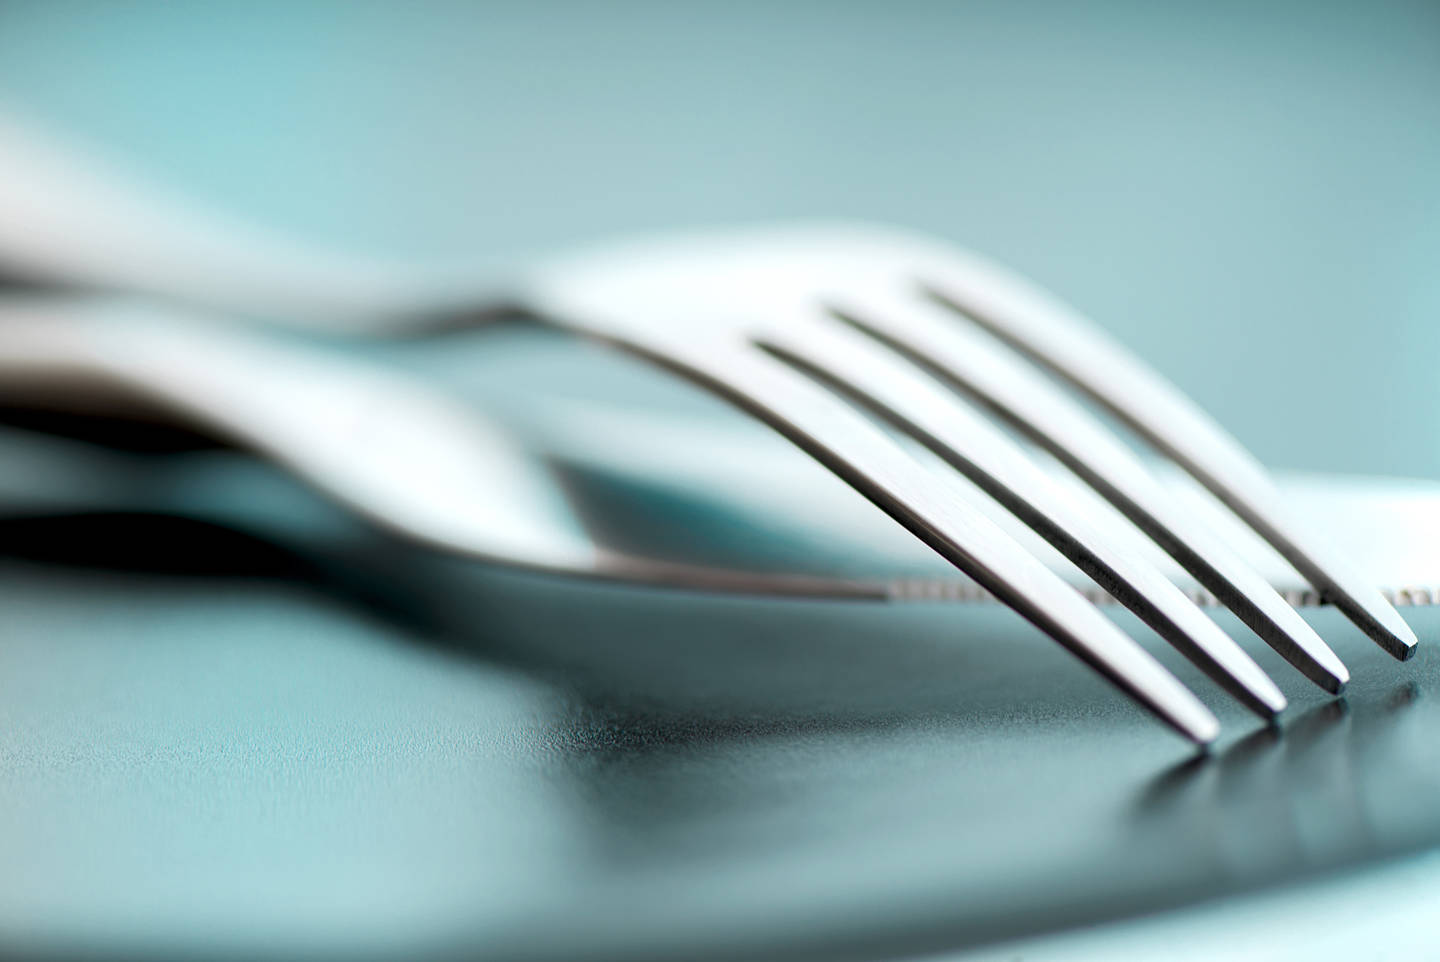 Dining hall and cafeteria: close-up of a fork lying on the blade of a knife.